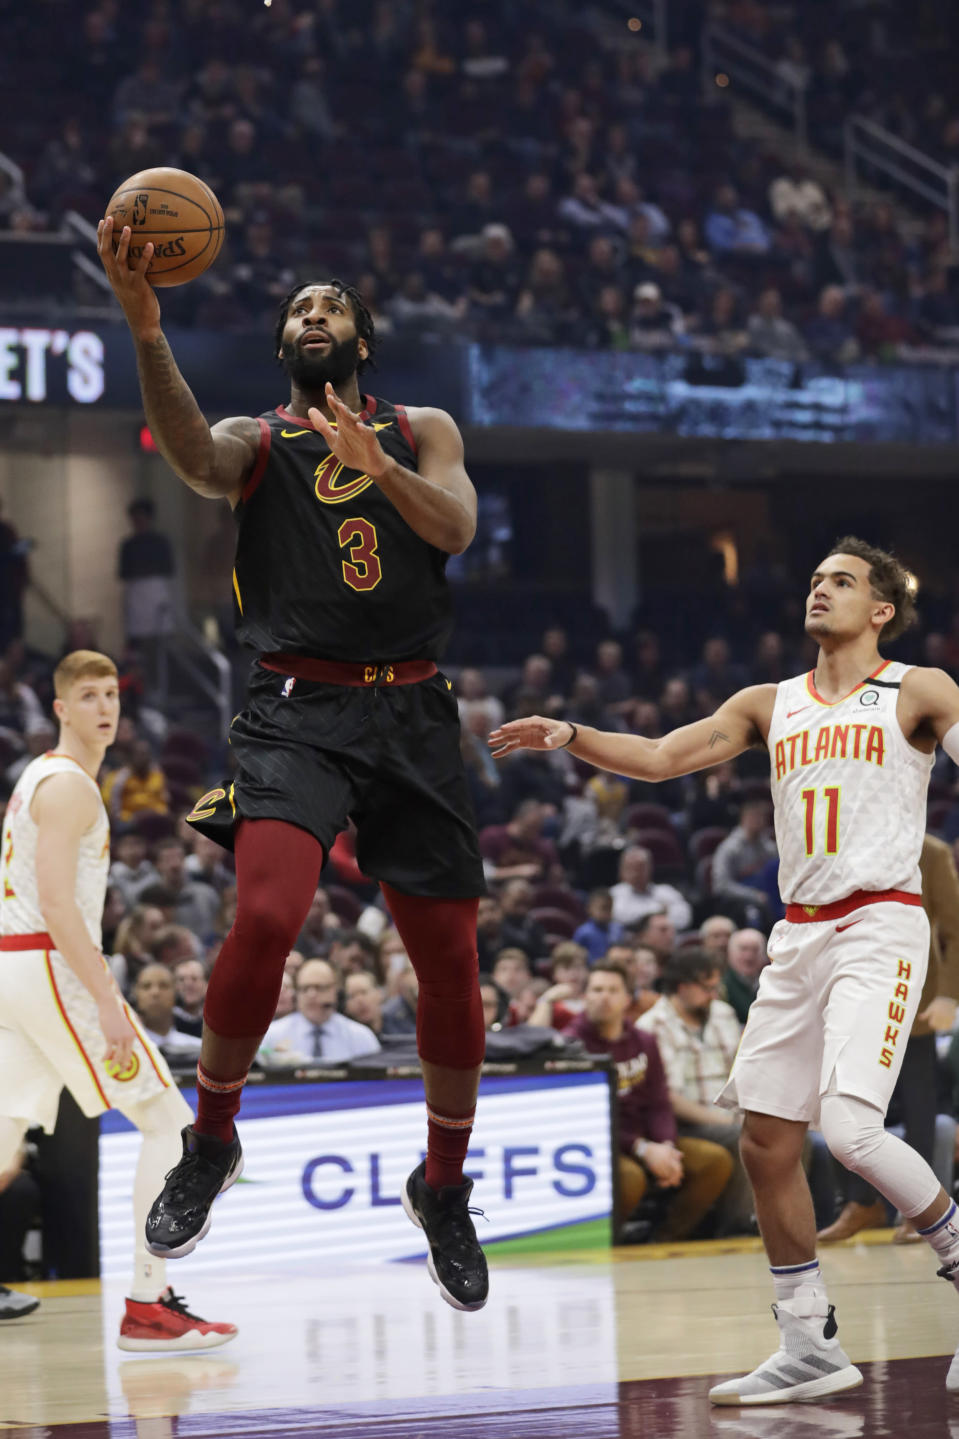 Cleveland Cavaliers' Andre Drummond (3) shoots against the Atlanta Hawks' Trae Young in the first half of an NBA basketball game, Wednesday, Feb. 12, 2020, in Cleveland. (AP Photo/Tony Dejak)